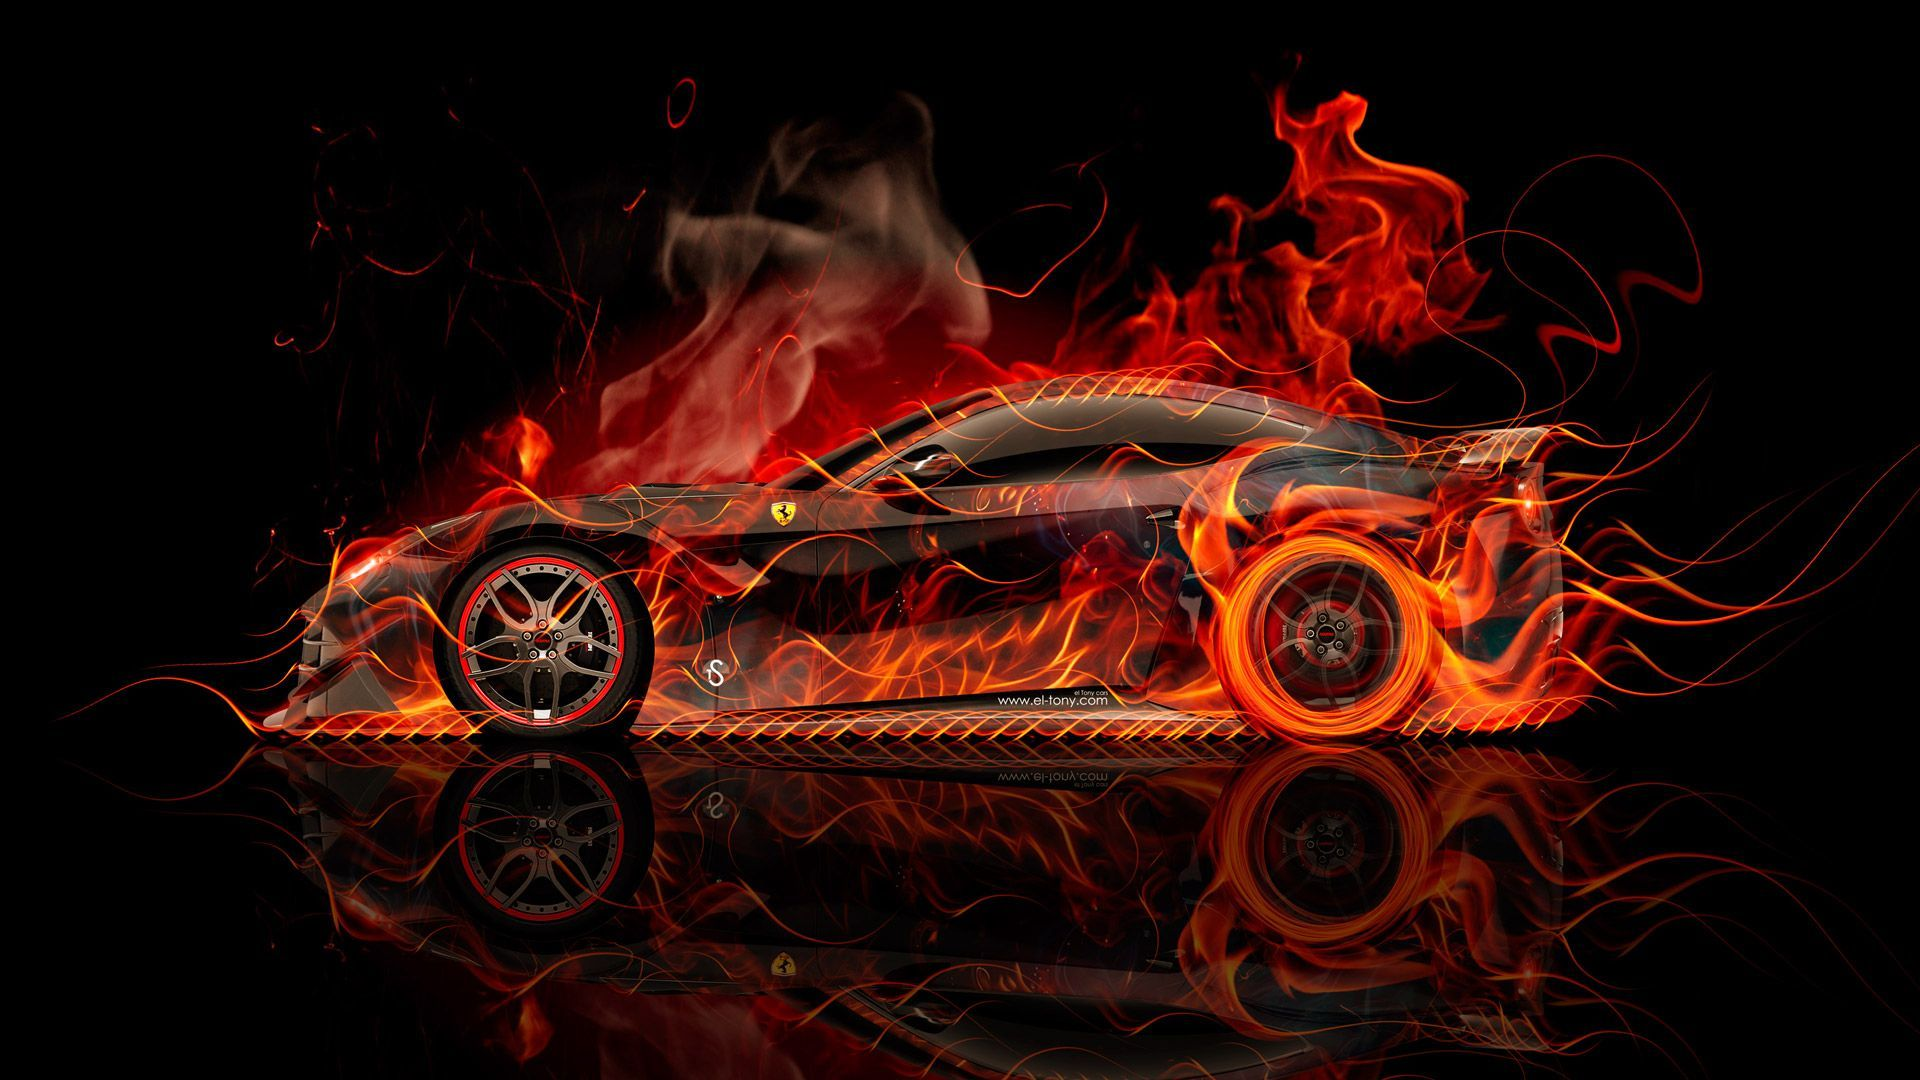 Delicieux Lamborghini Asterion Back Fire Abstract Car El Tony